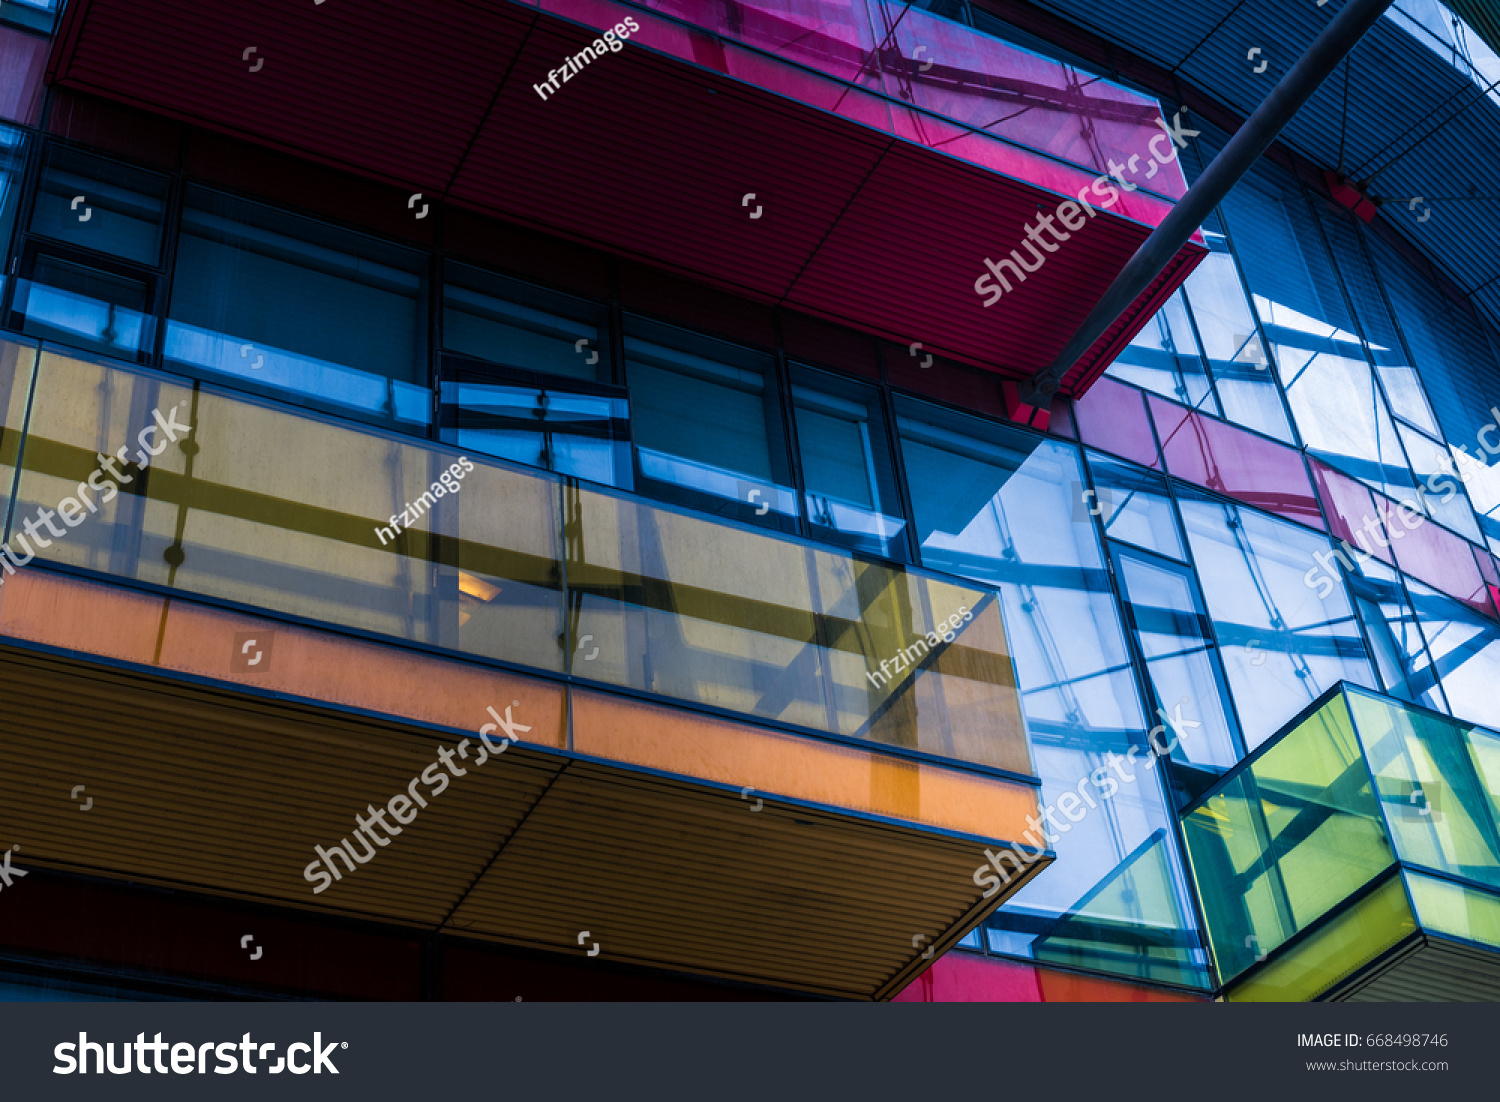 detail shot of modern architecture facade,business concepts,in city of China. #668498746